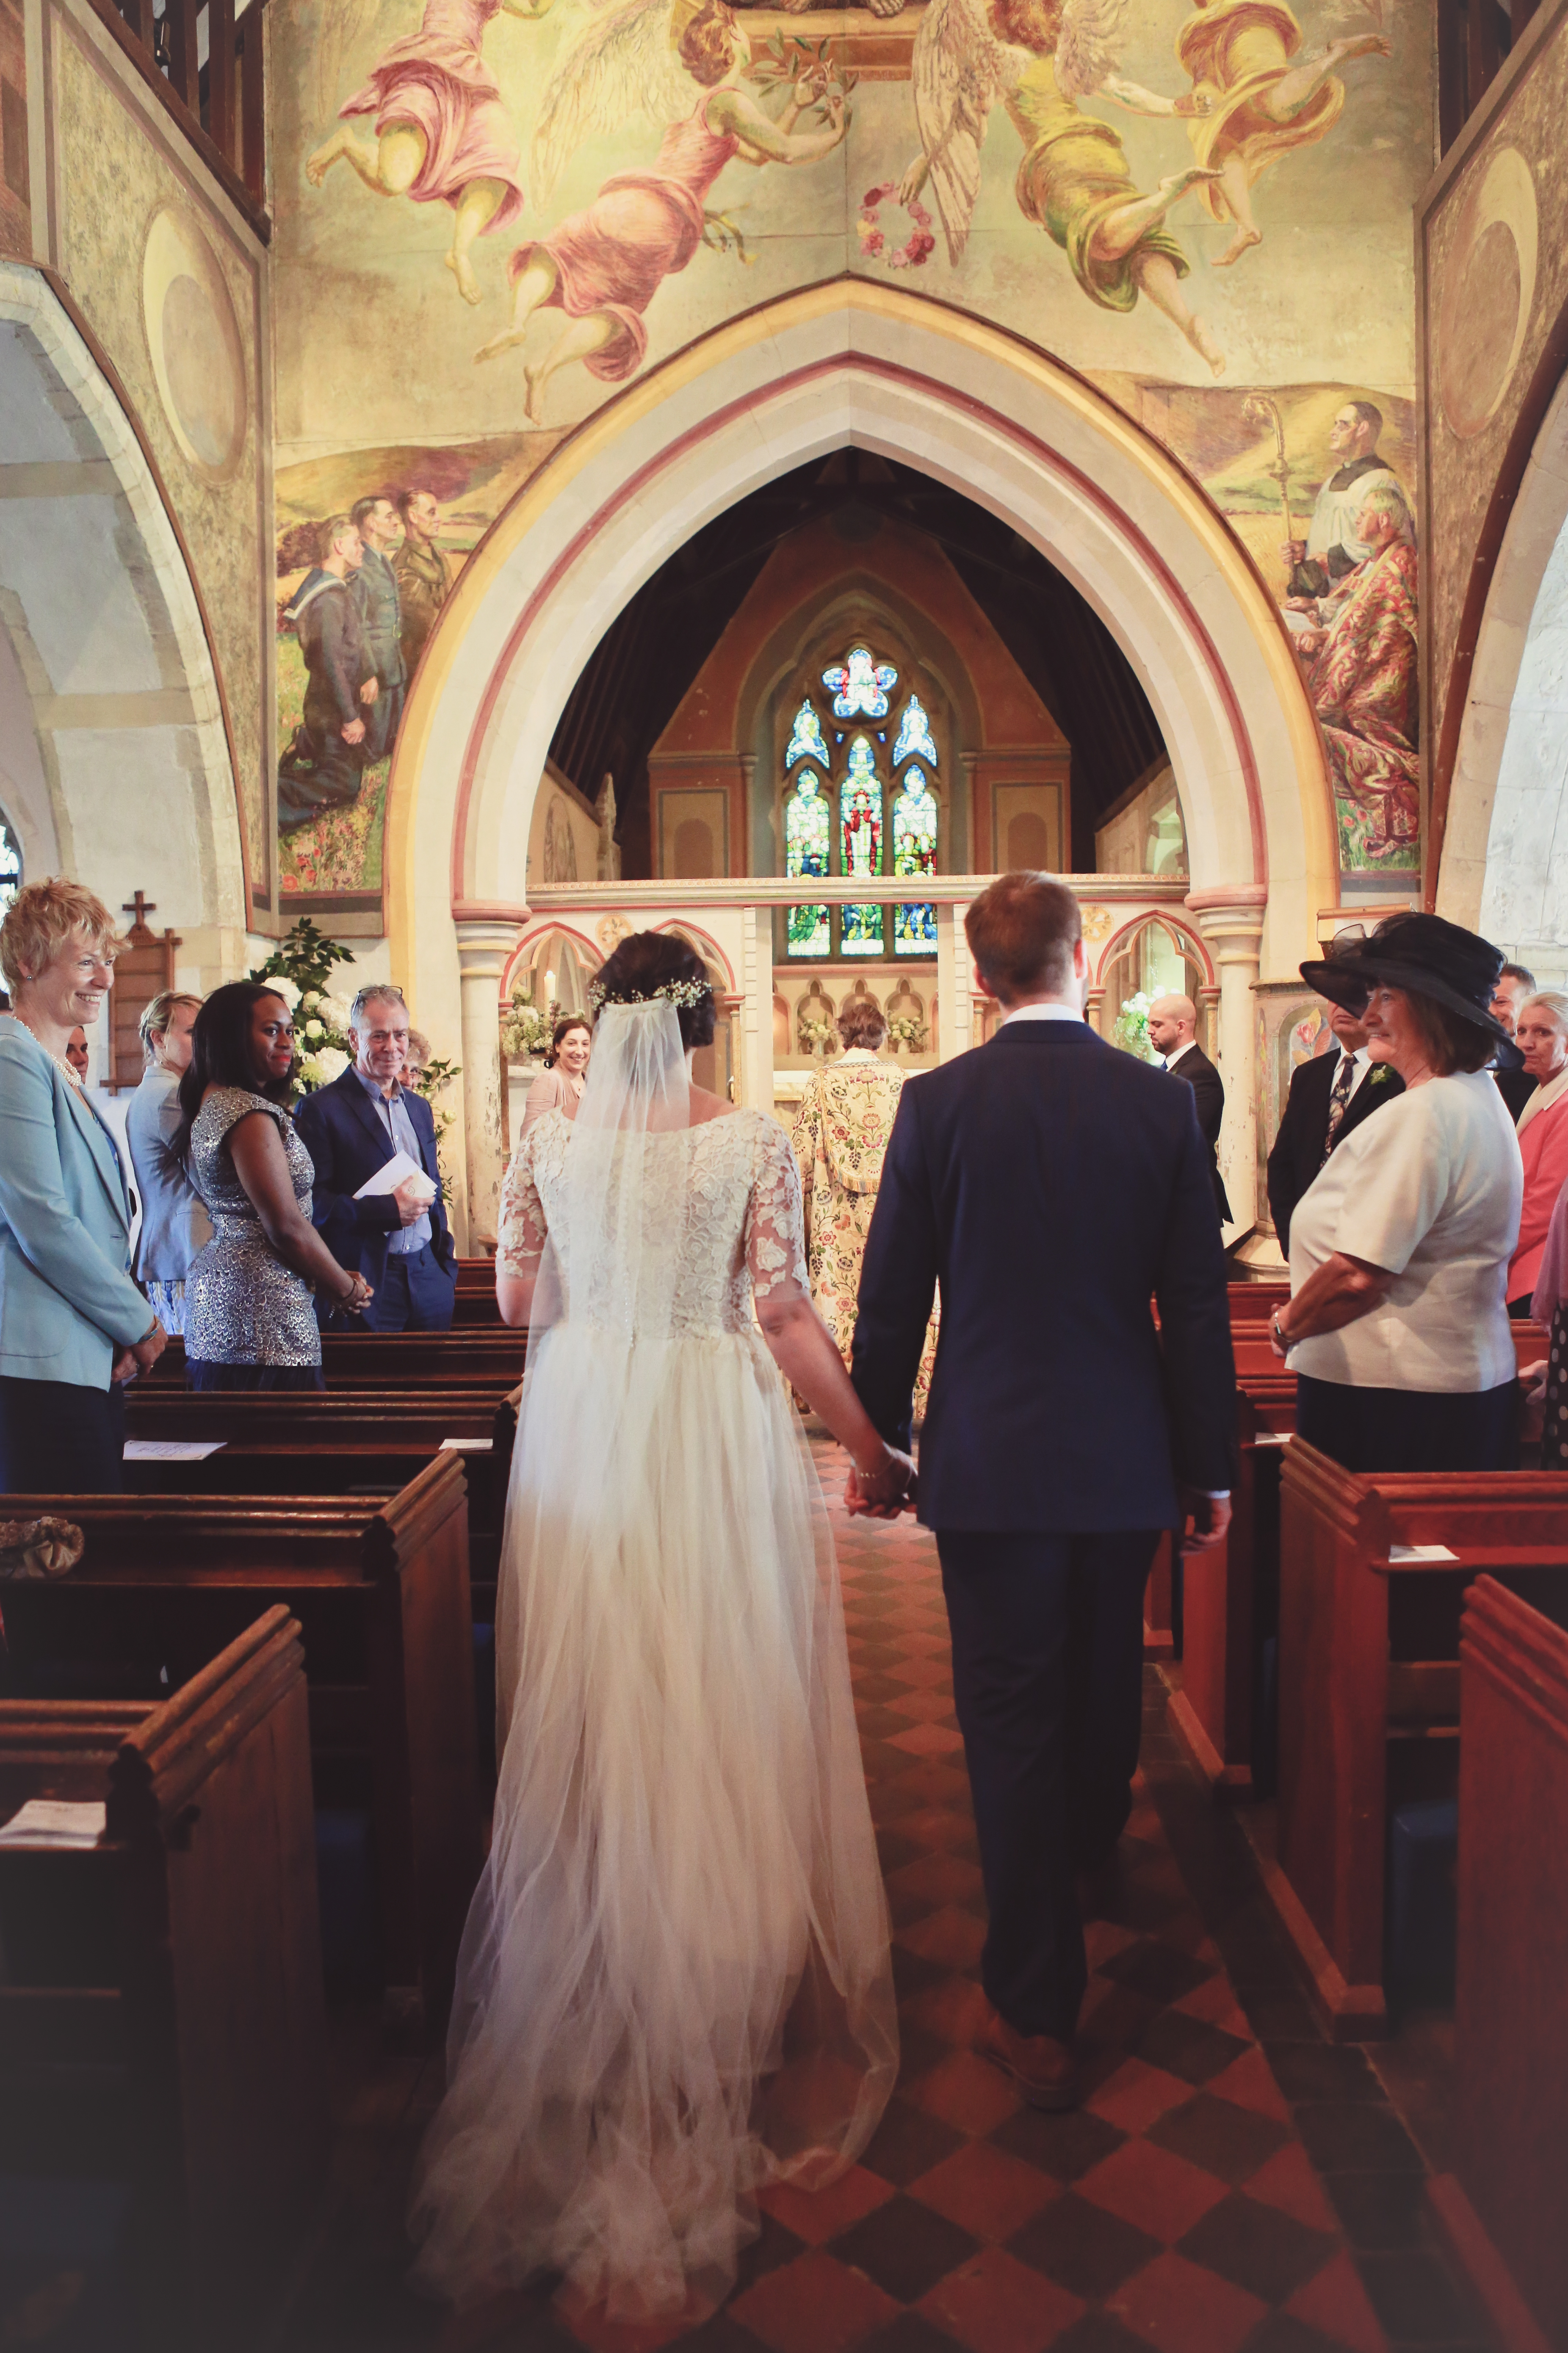 walking up the aisle, church wedding, lace tulle dress